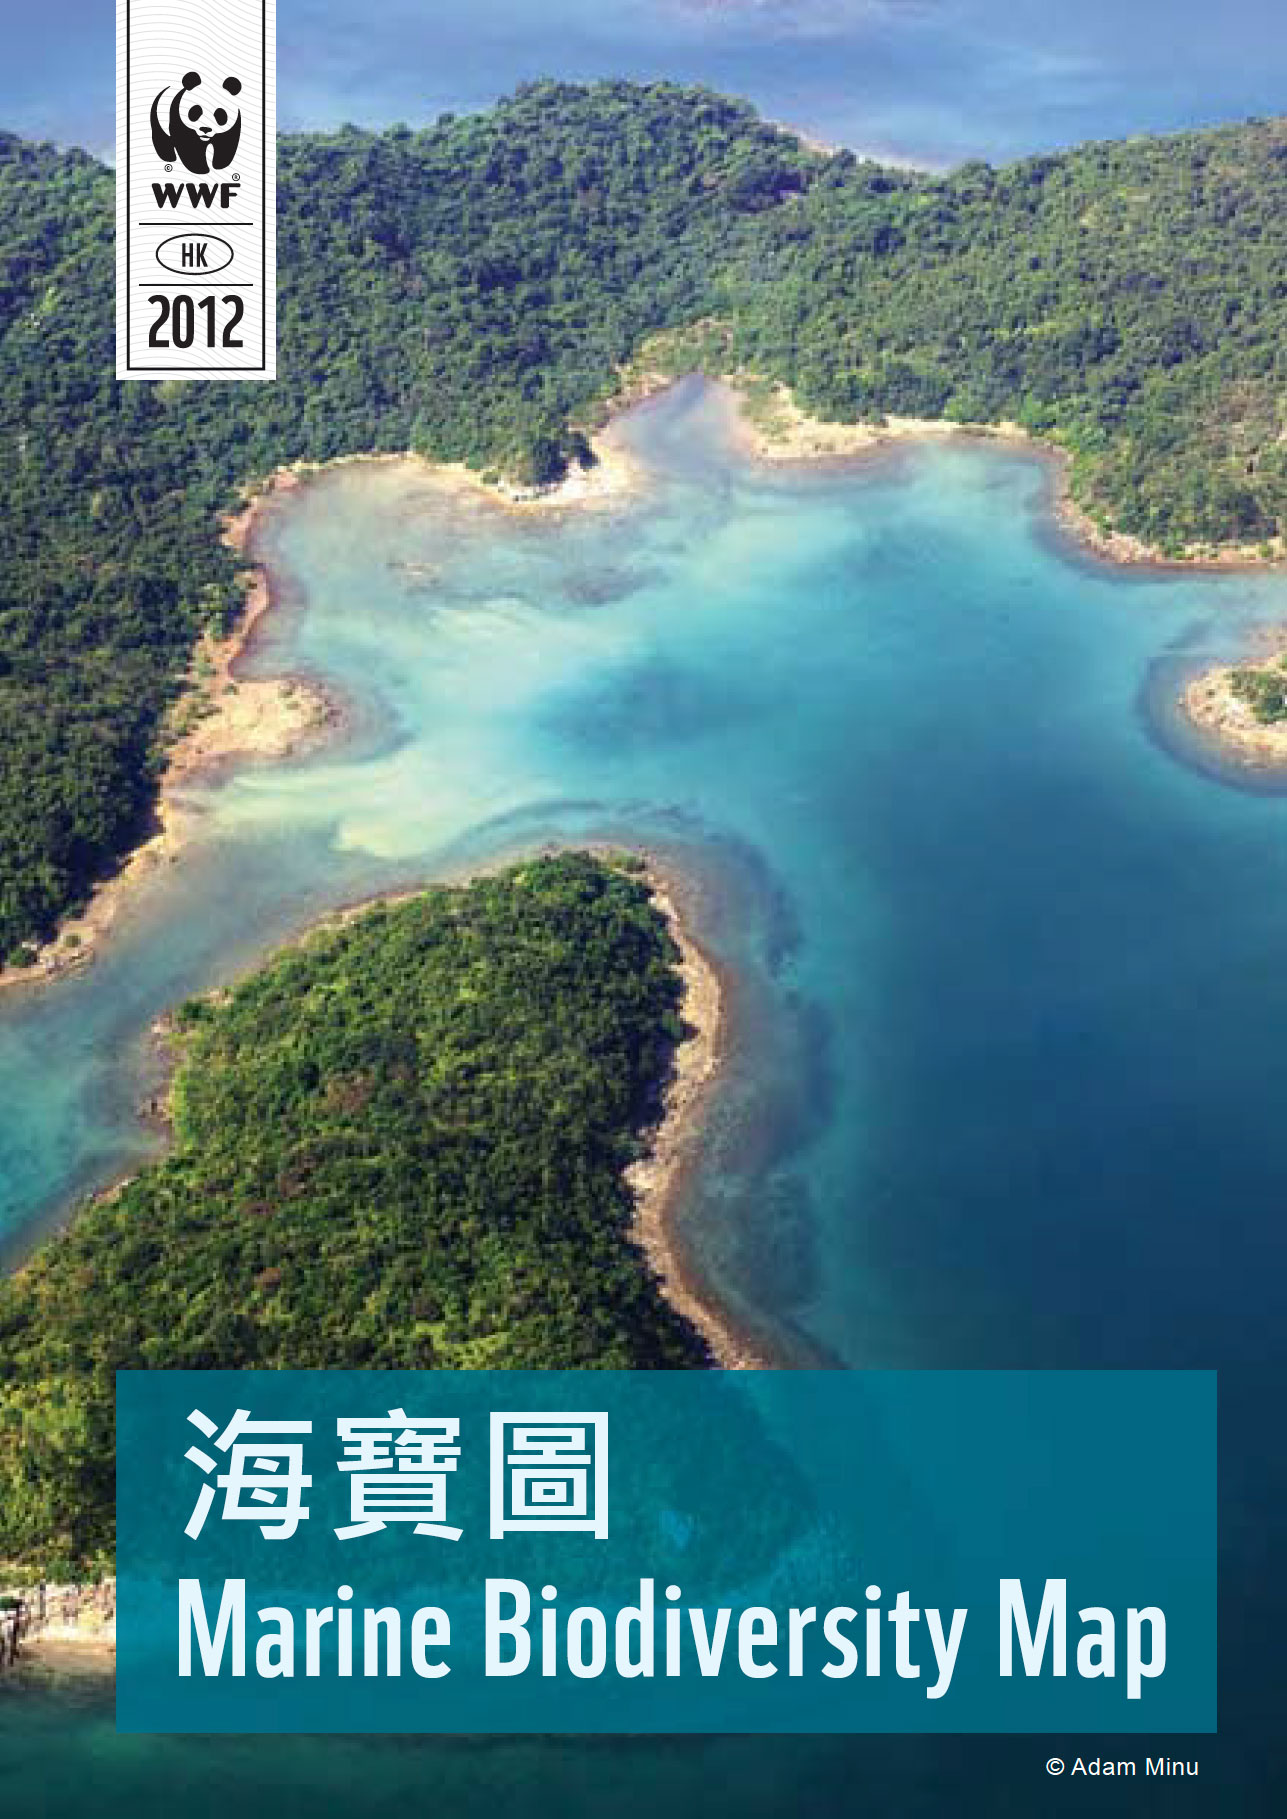 Wwf Launches Hong Kong S First Marine Biodiversity Map